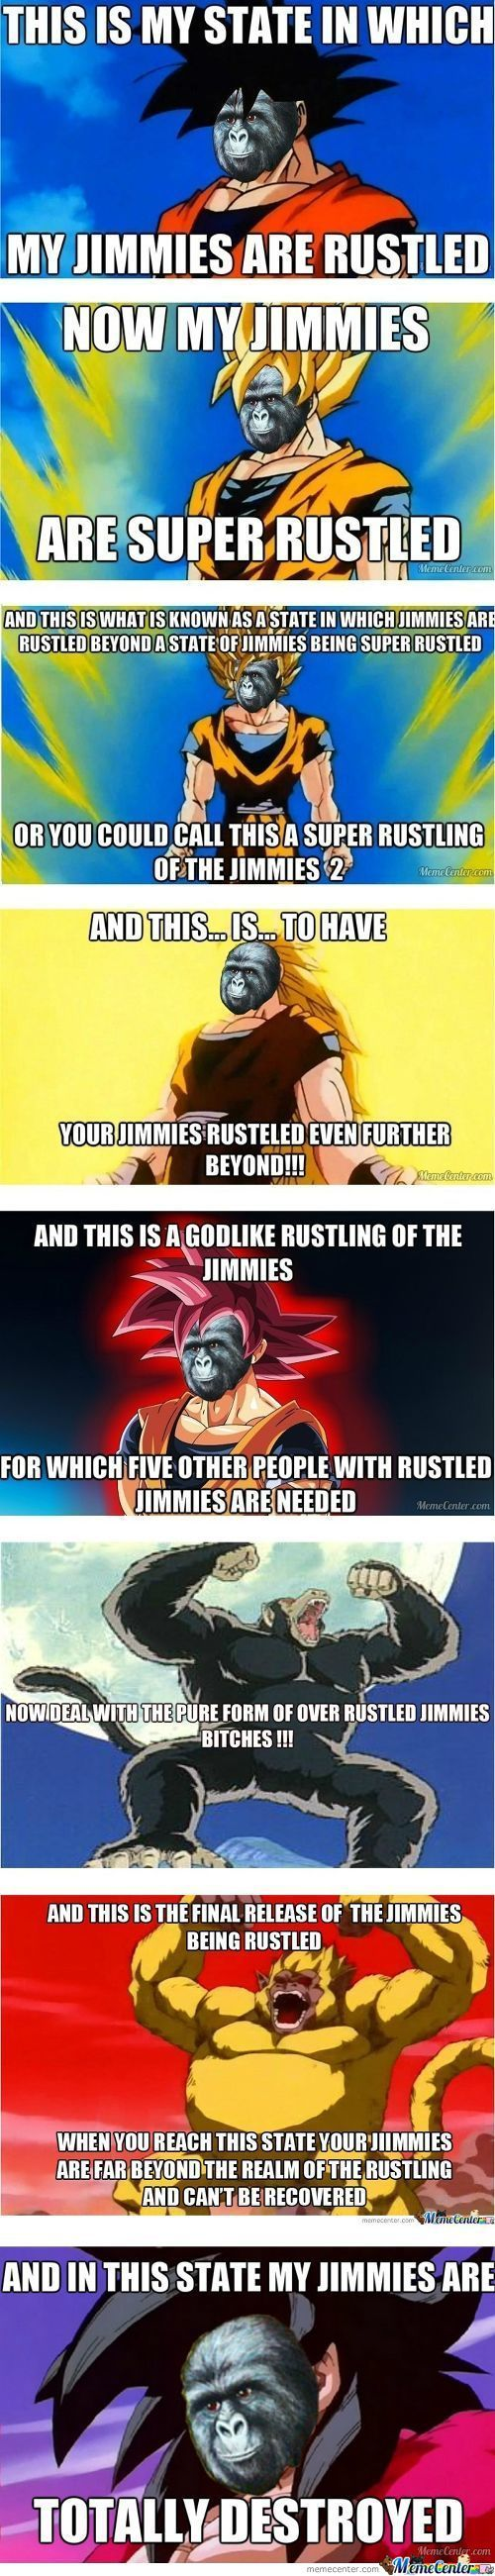 Super Rustled Jimmies 4